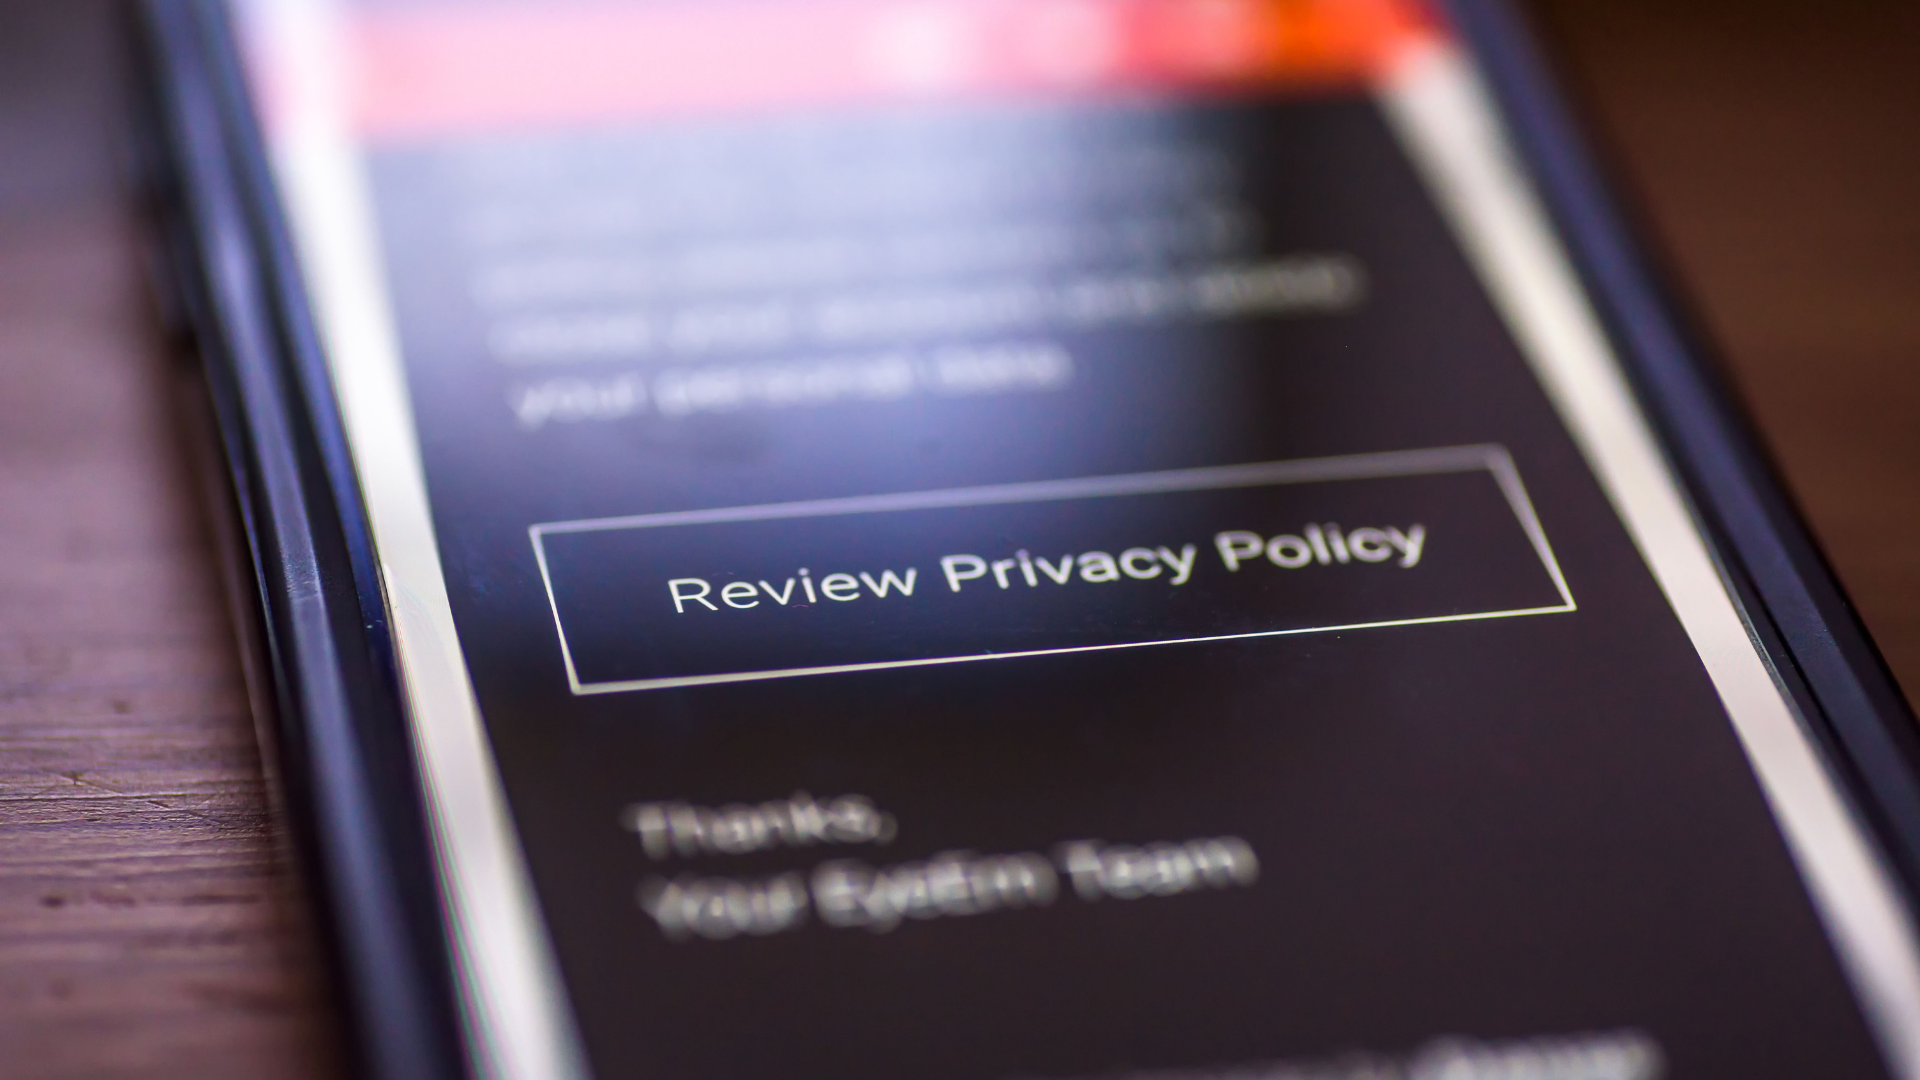 GSC - privacy policy image